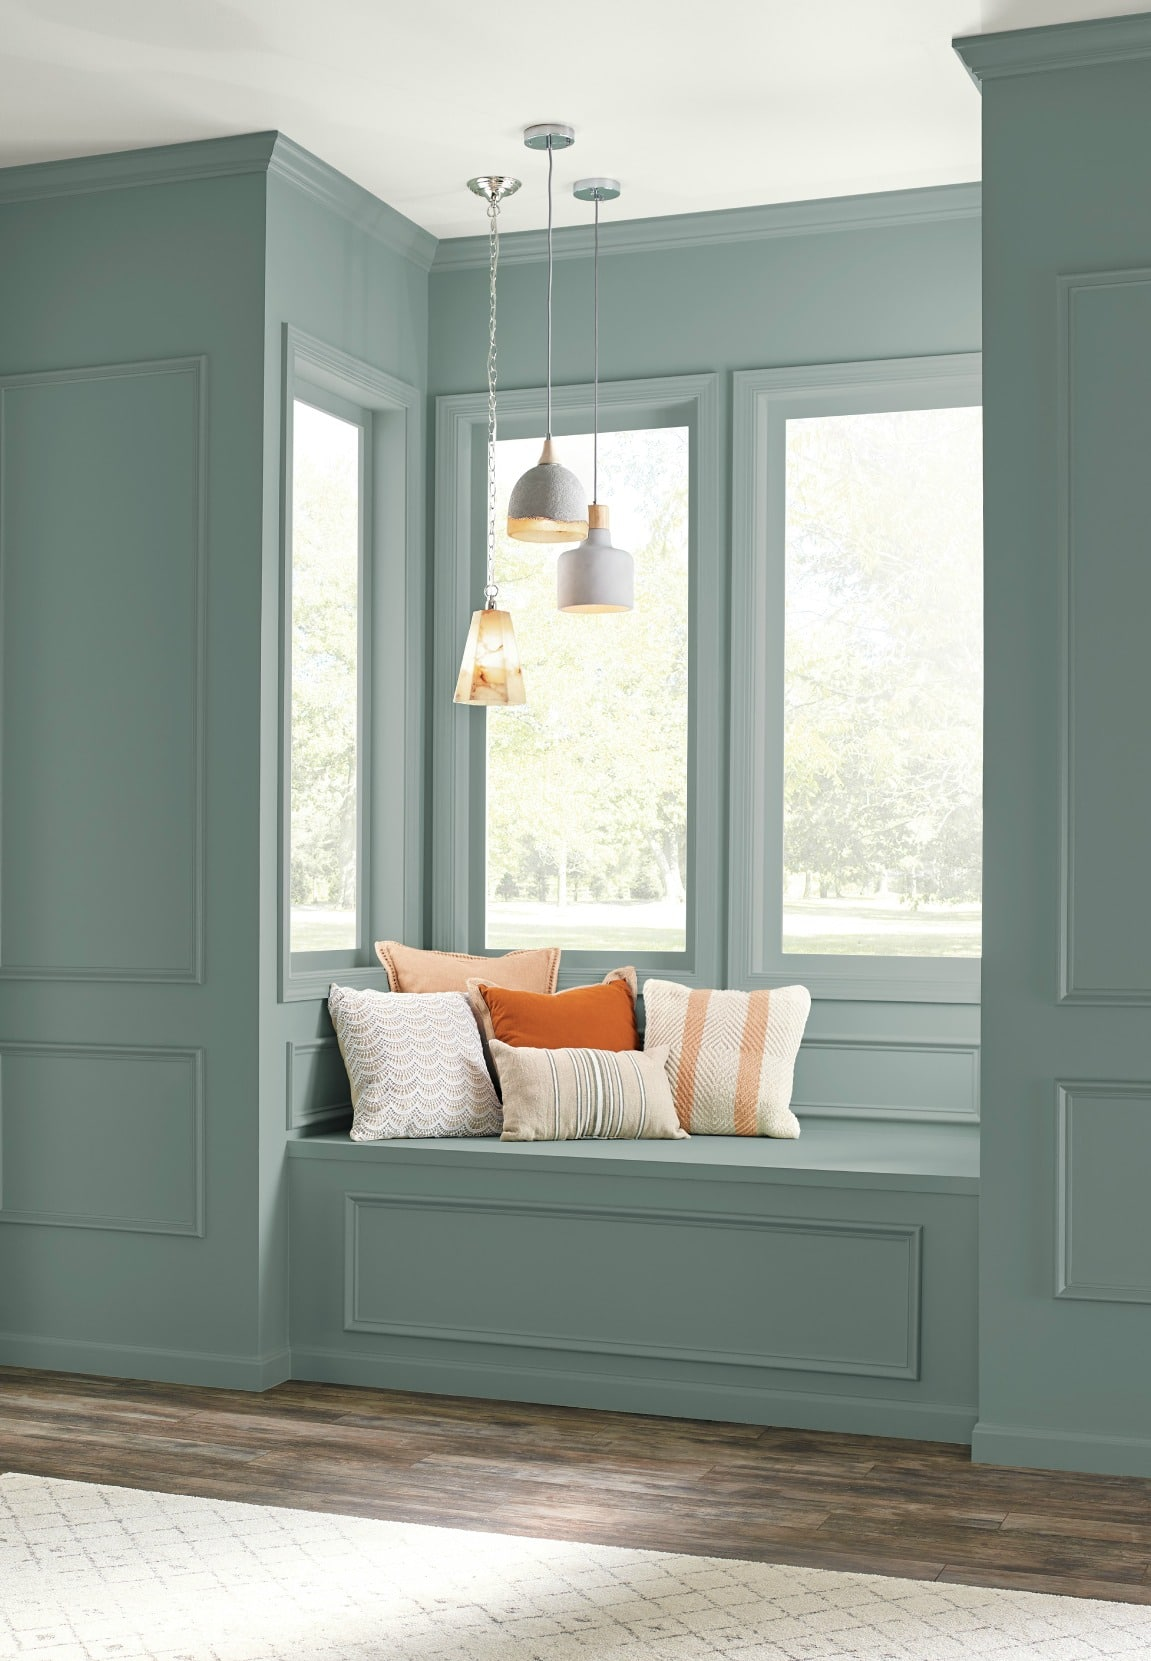 Behr in the Moment in a reading nook on painted wall panelling. Kylie M E-decor, paint expert blog, photo via Behr